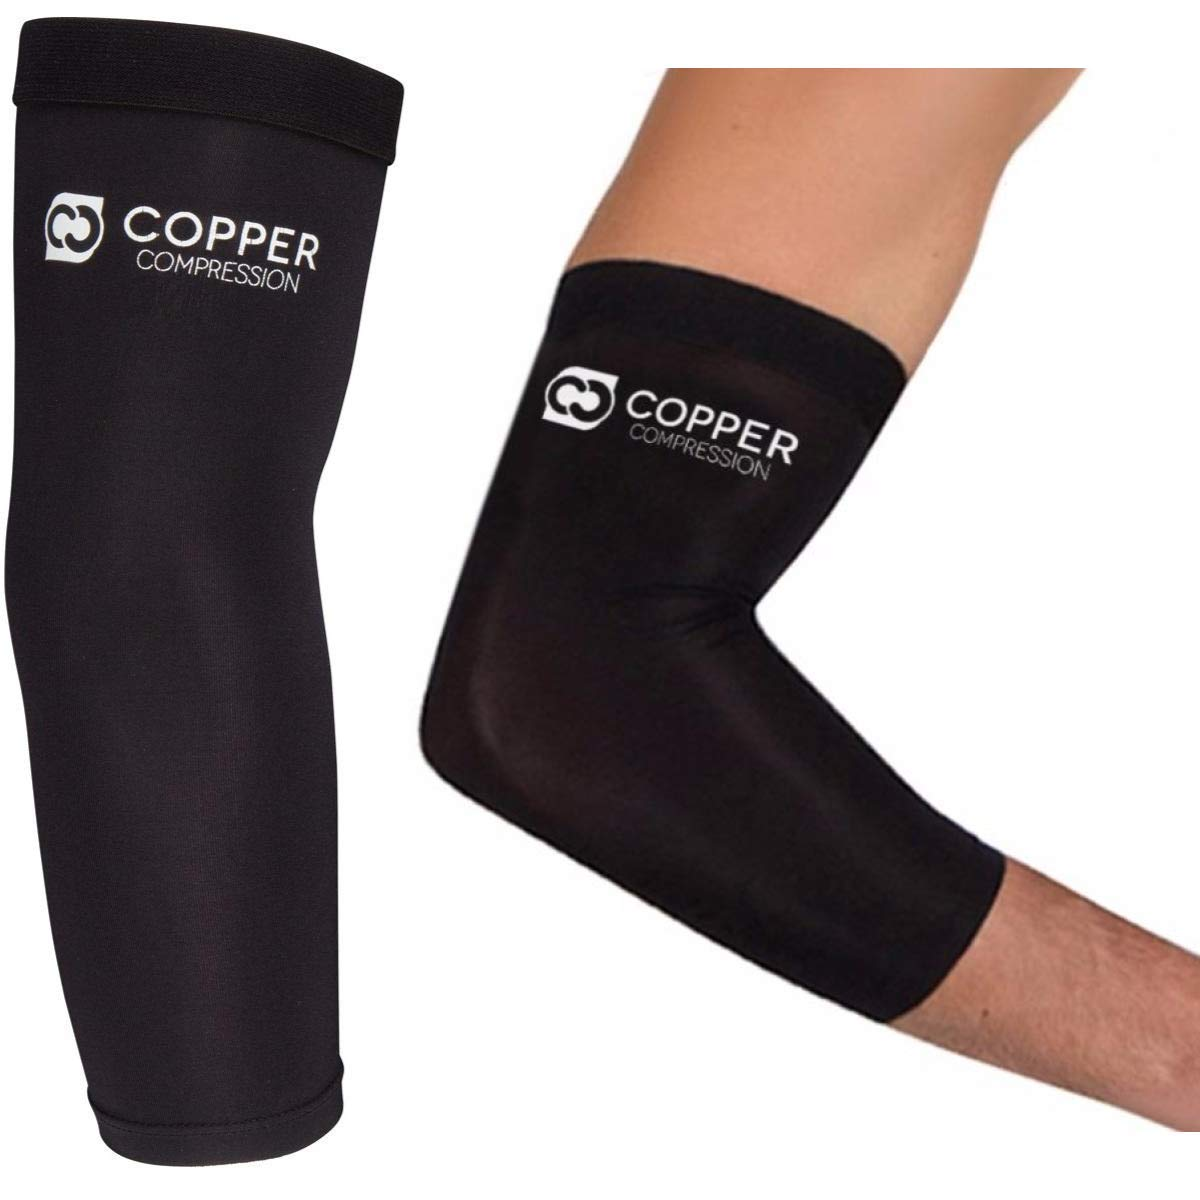 Copper Compression Recovery Elbow Sleeve - GUARANTEED Highest Copper Content Elbow Brace For Tendonitis, Golfers Elbow, Tennis Elbow, Arthritis. Copper Infused Fit Elbow Support Arm Sleeves Men Women